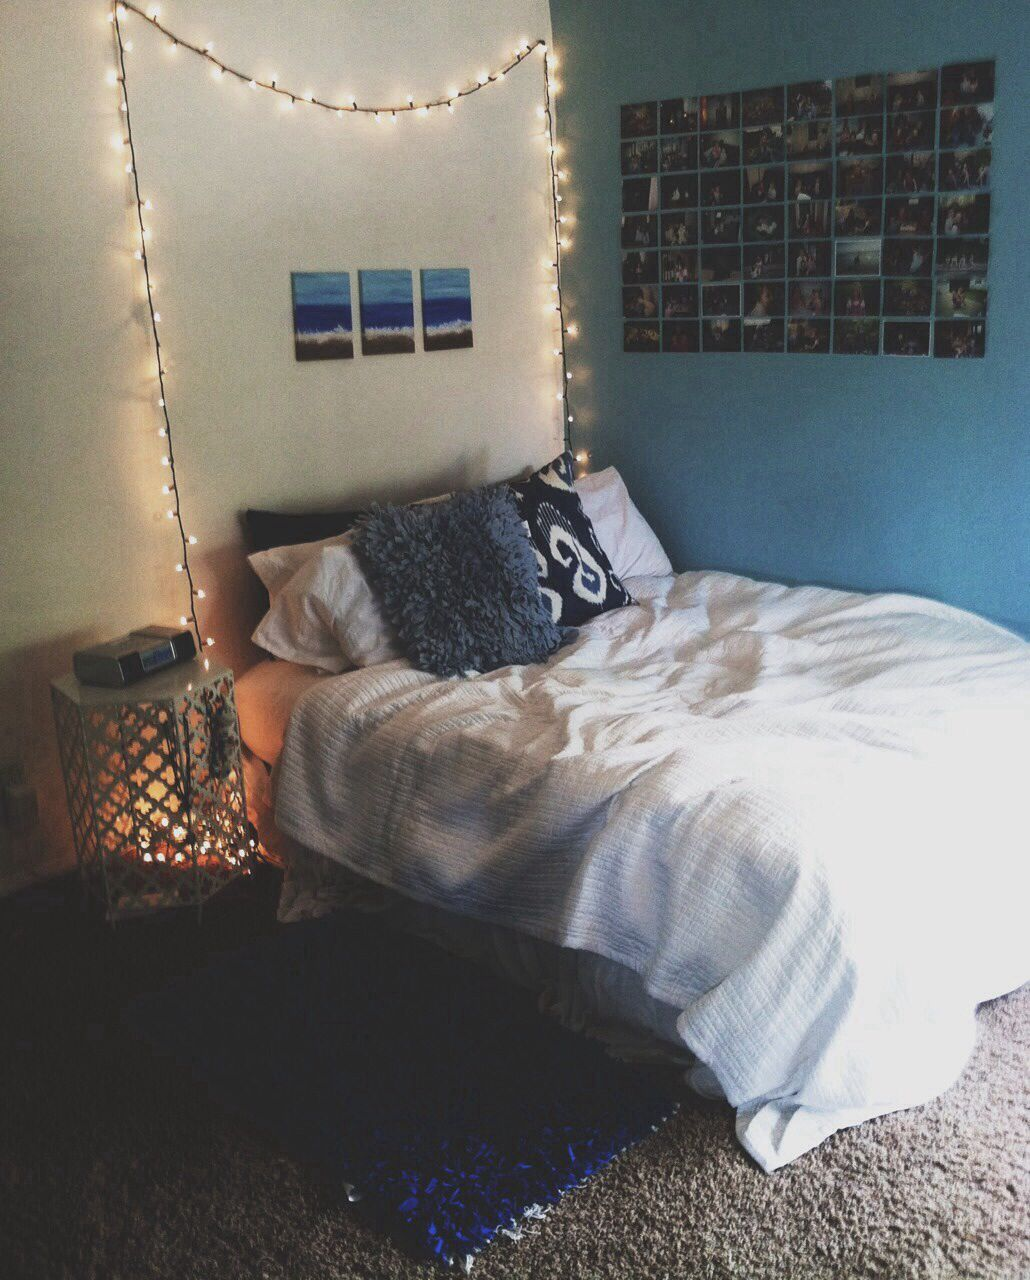 The little split picture above the bed is a cute idea Ties in the